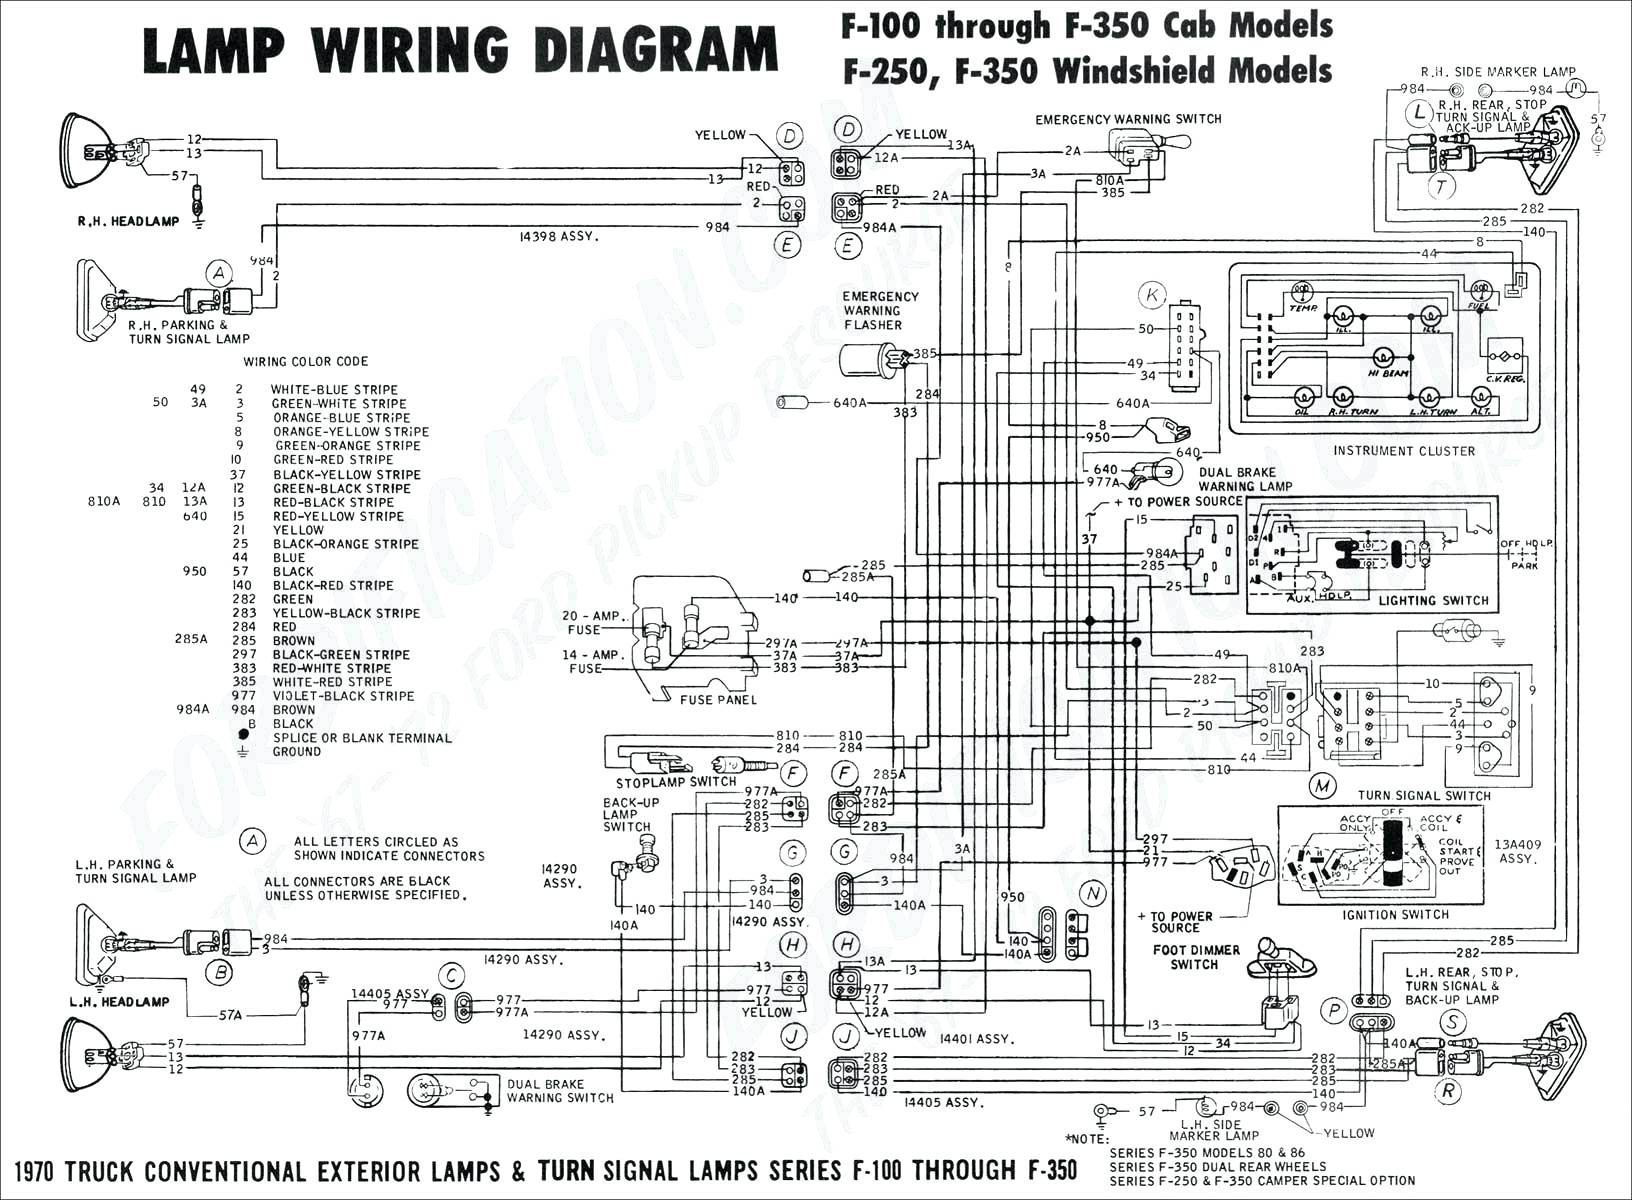 Brake Pedal Switch Diagram Brake Lights Wiring Diagram Elegant Brake Light Wiring Diagram